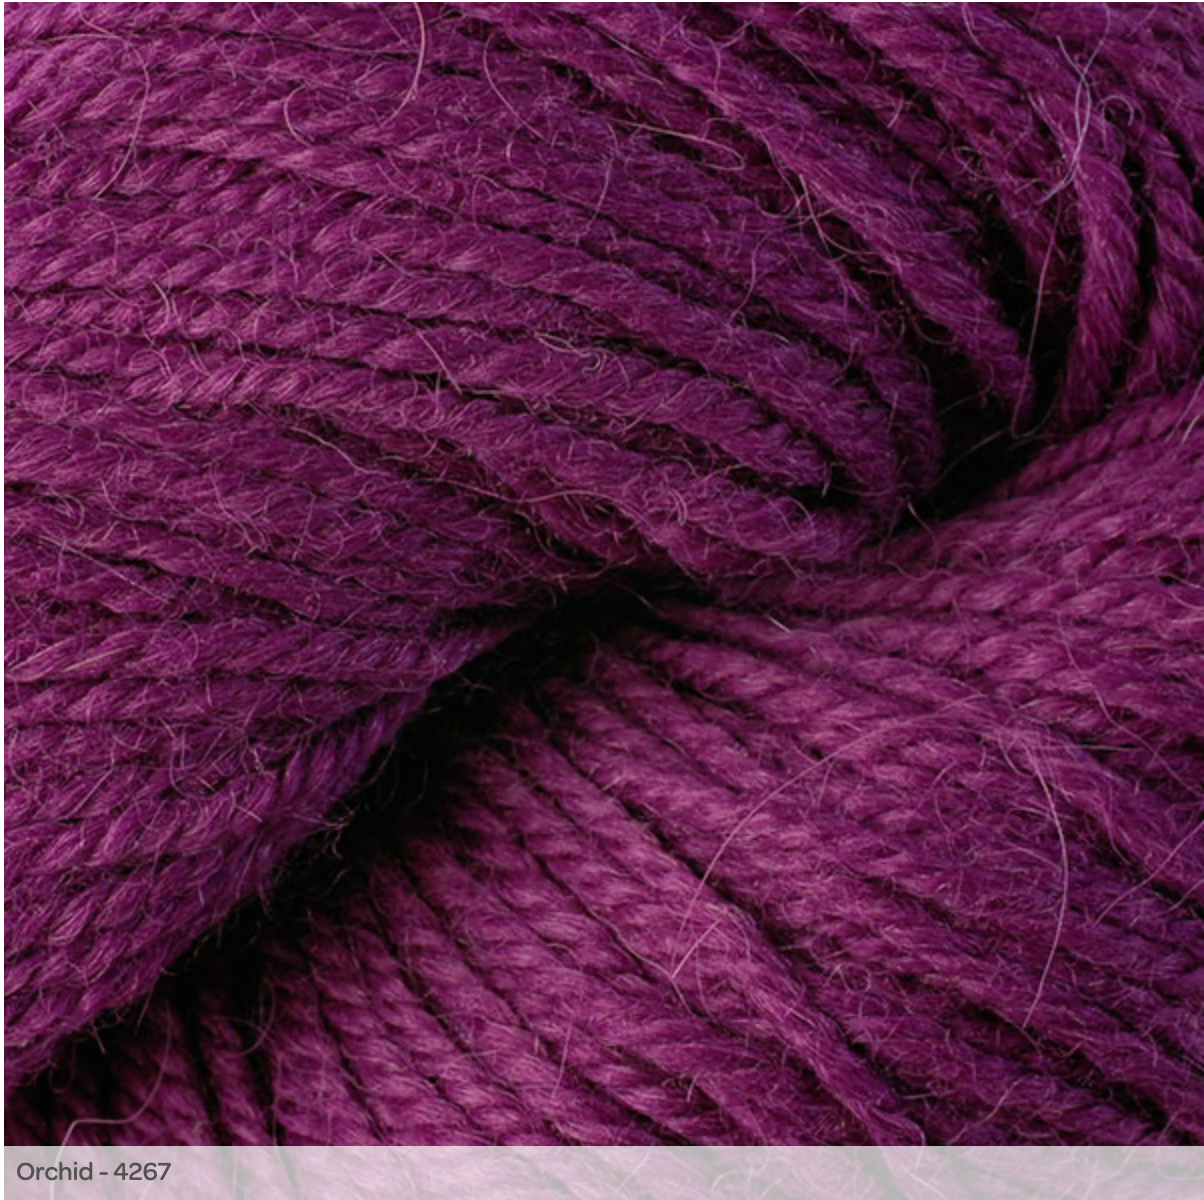 Berroco Ultra Alpaca Light - Orchid 4267